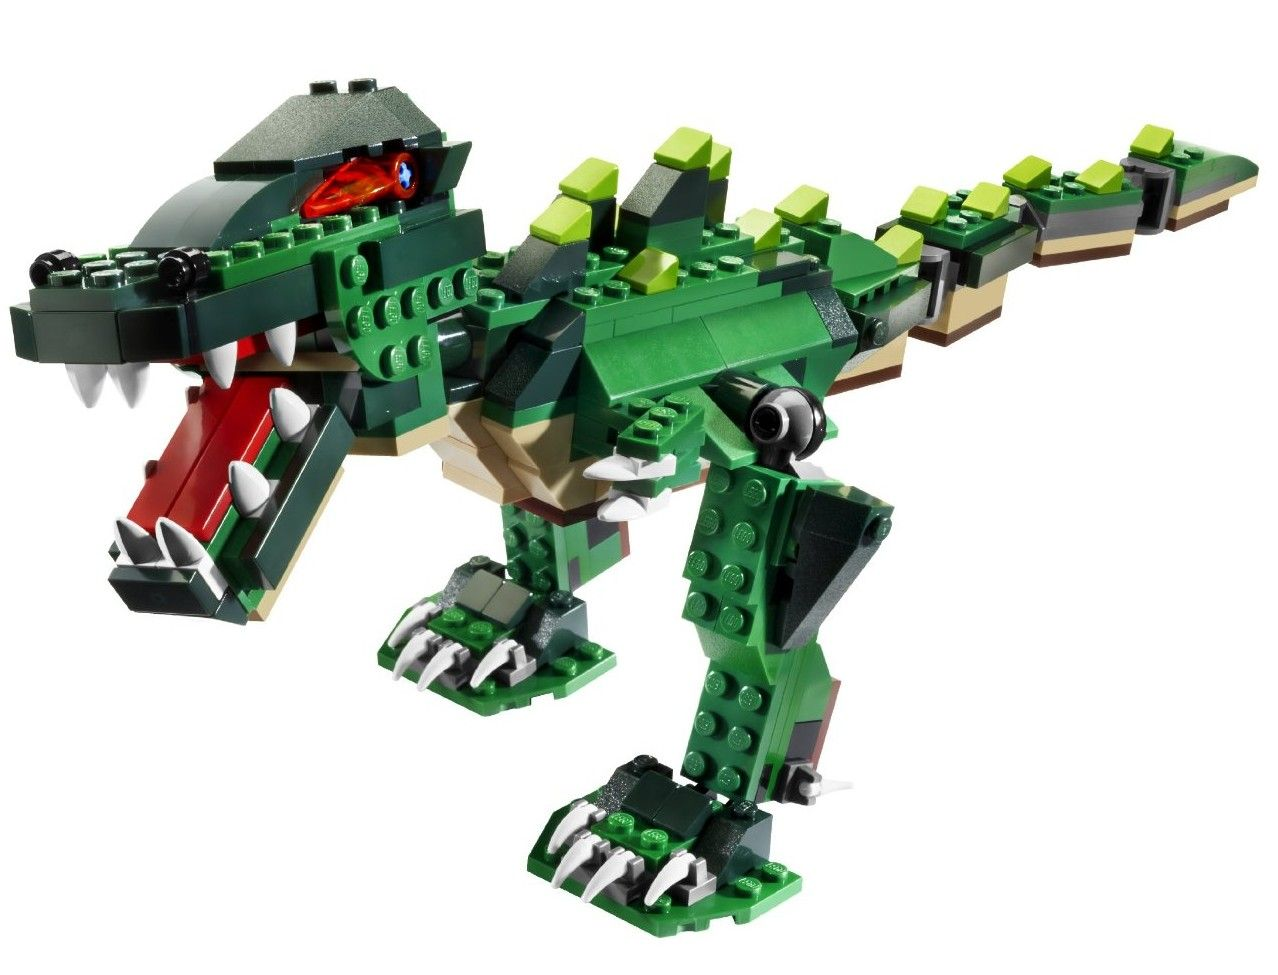 Build an awesome T Rex Lego Dinosaur. This dinosaur toy is hiding inside the LEGO Ferocious Creatures 5868 brick set and just waiting to get out.